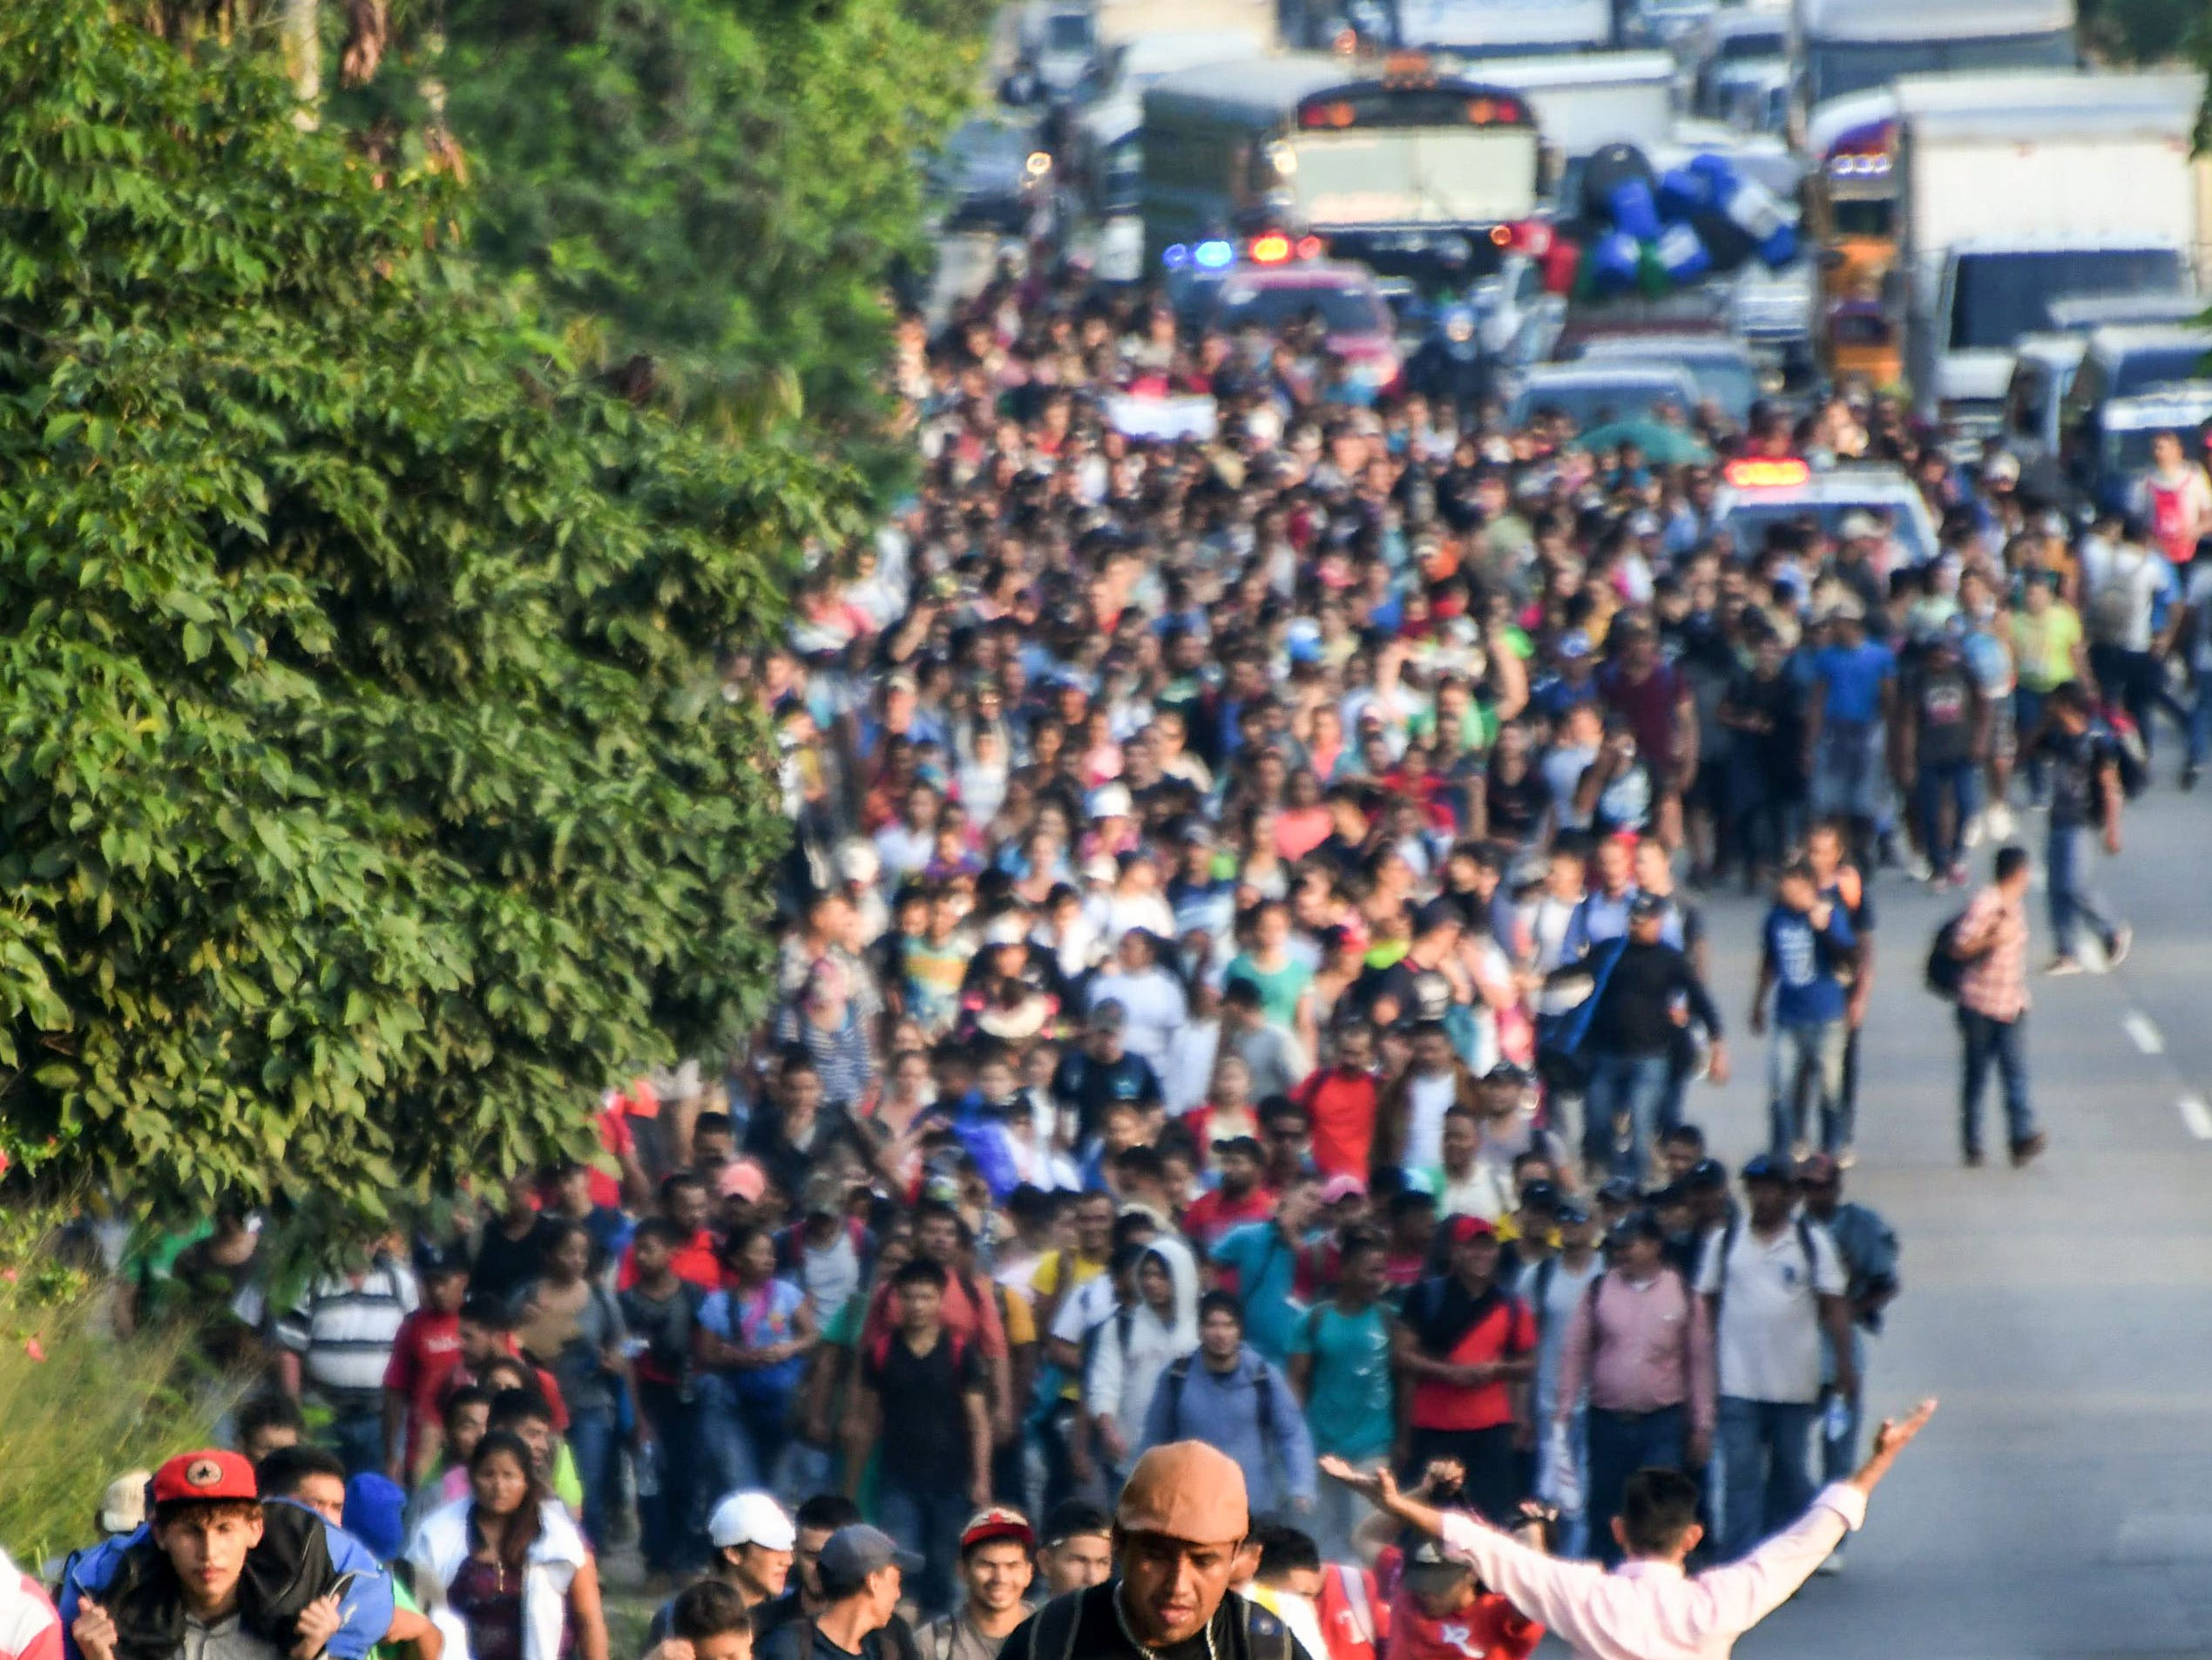 Hondurans walk towards the US from San Pedro Sula, 180 kms north from Tegucigalpa, on October 13, 2018. - Hondurans decided to left their country due to insecurity and the lack of employment opportunities. The exodus started from the bus station in San Pedro Sula towards the border with Guatemala. (Photo by ORLANDO SIERRA / AFP)        (Photo credit should read ORLANDO SIERRA/AFP/Getty Images)